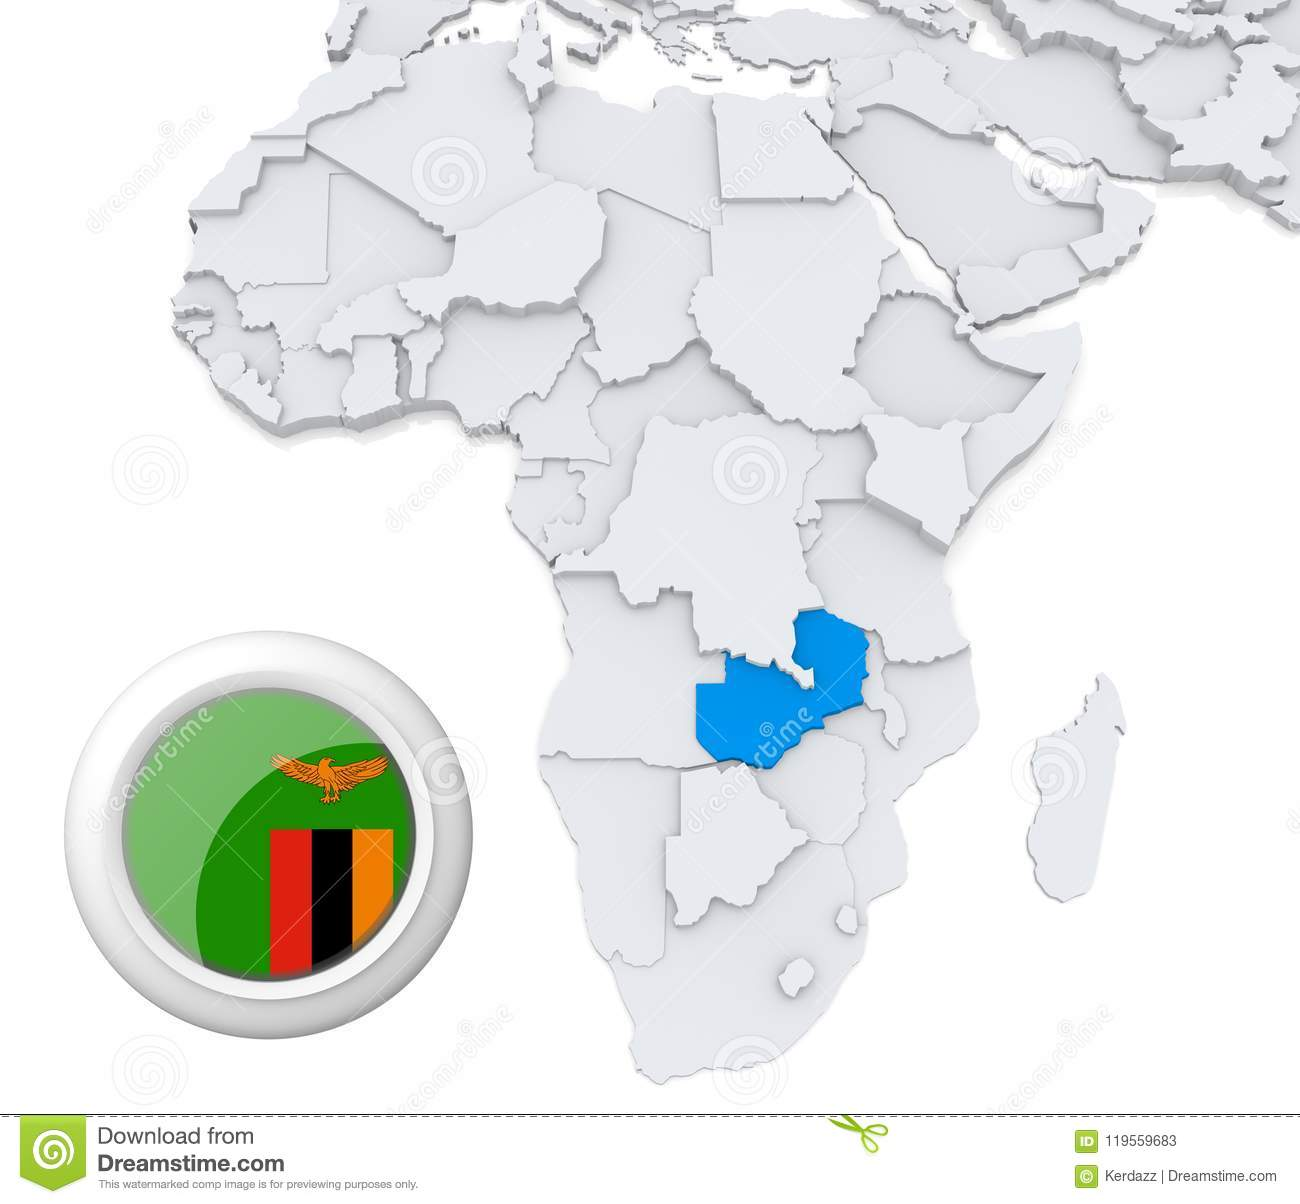 Zambia on Africa map stock illustration. Illustration of education ...